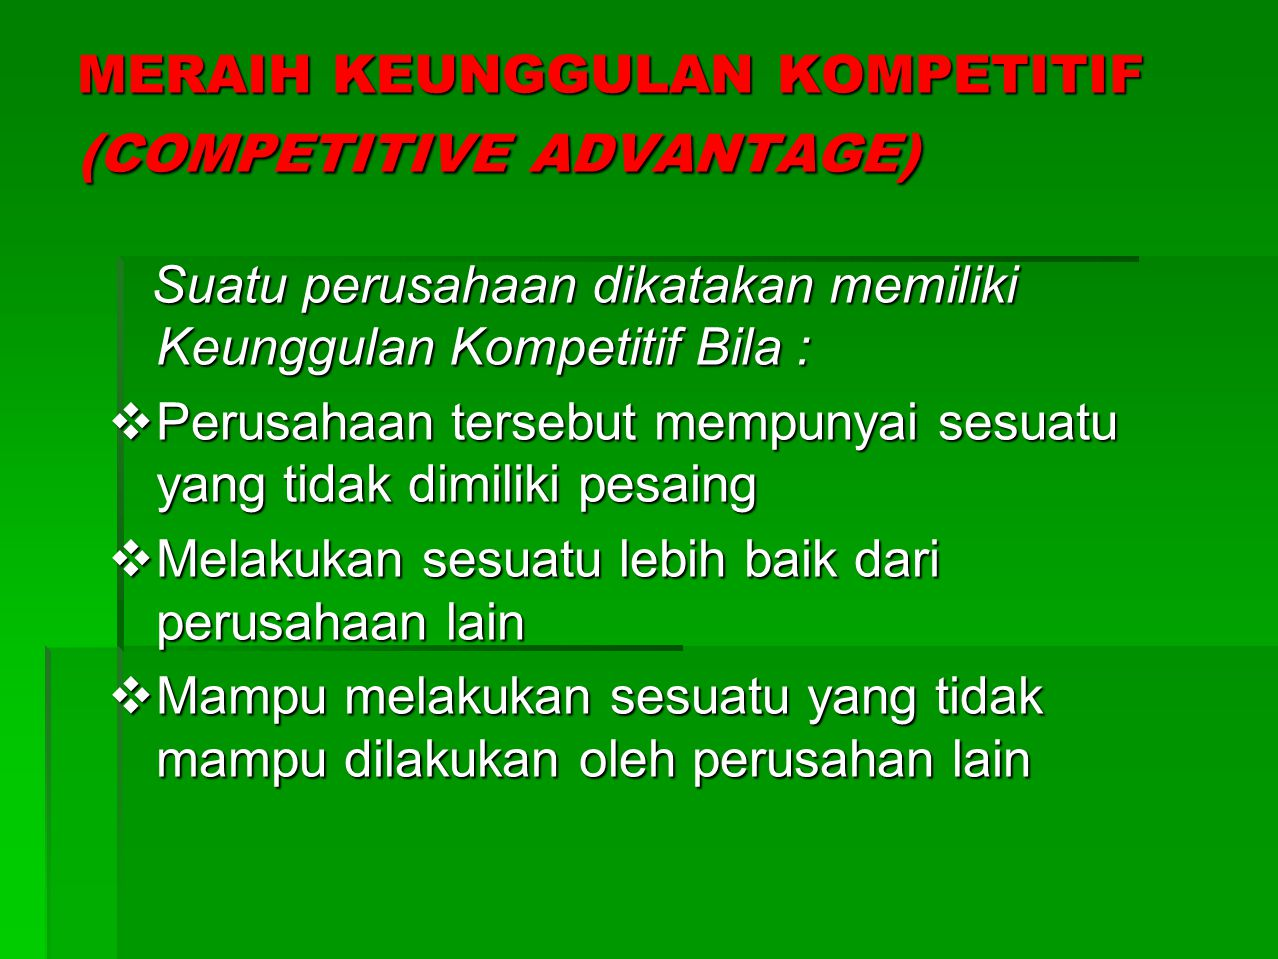 MERAIH KEUNGGULAN KOMPETITIF (COMPETITIVE ADVANTAGE)